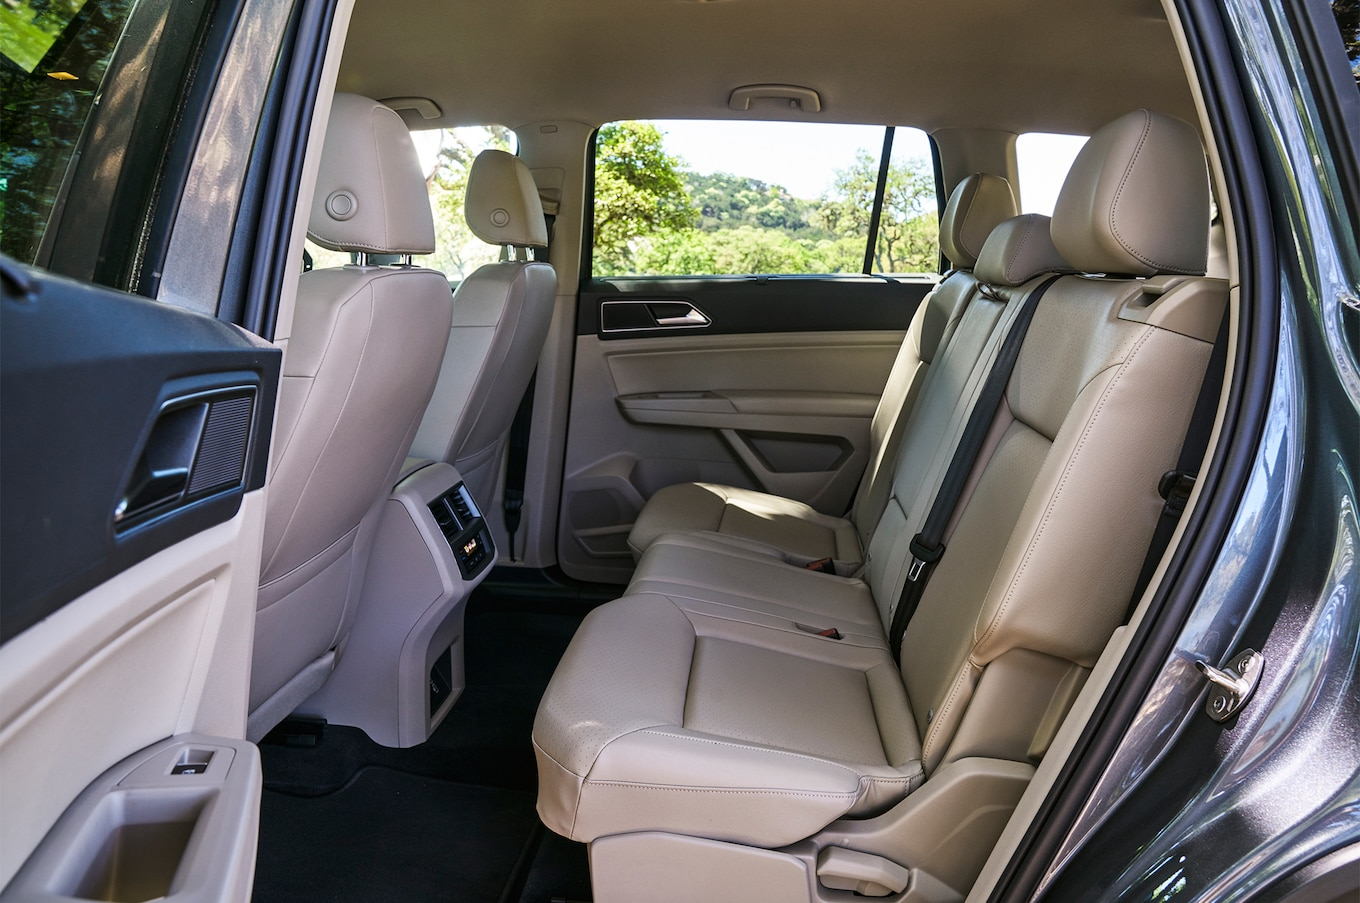 2018 Volkswagen Atlas rear seat